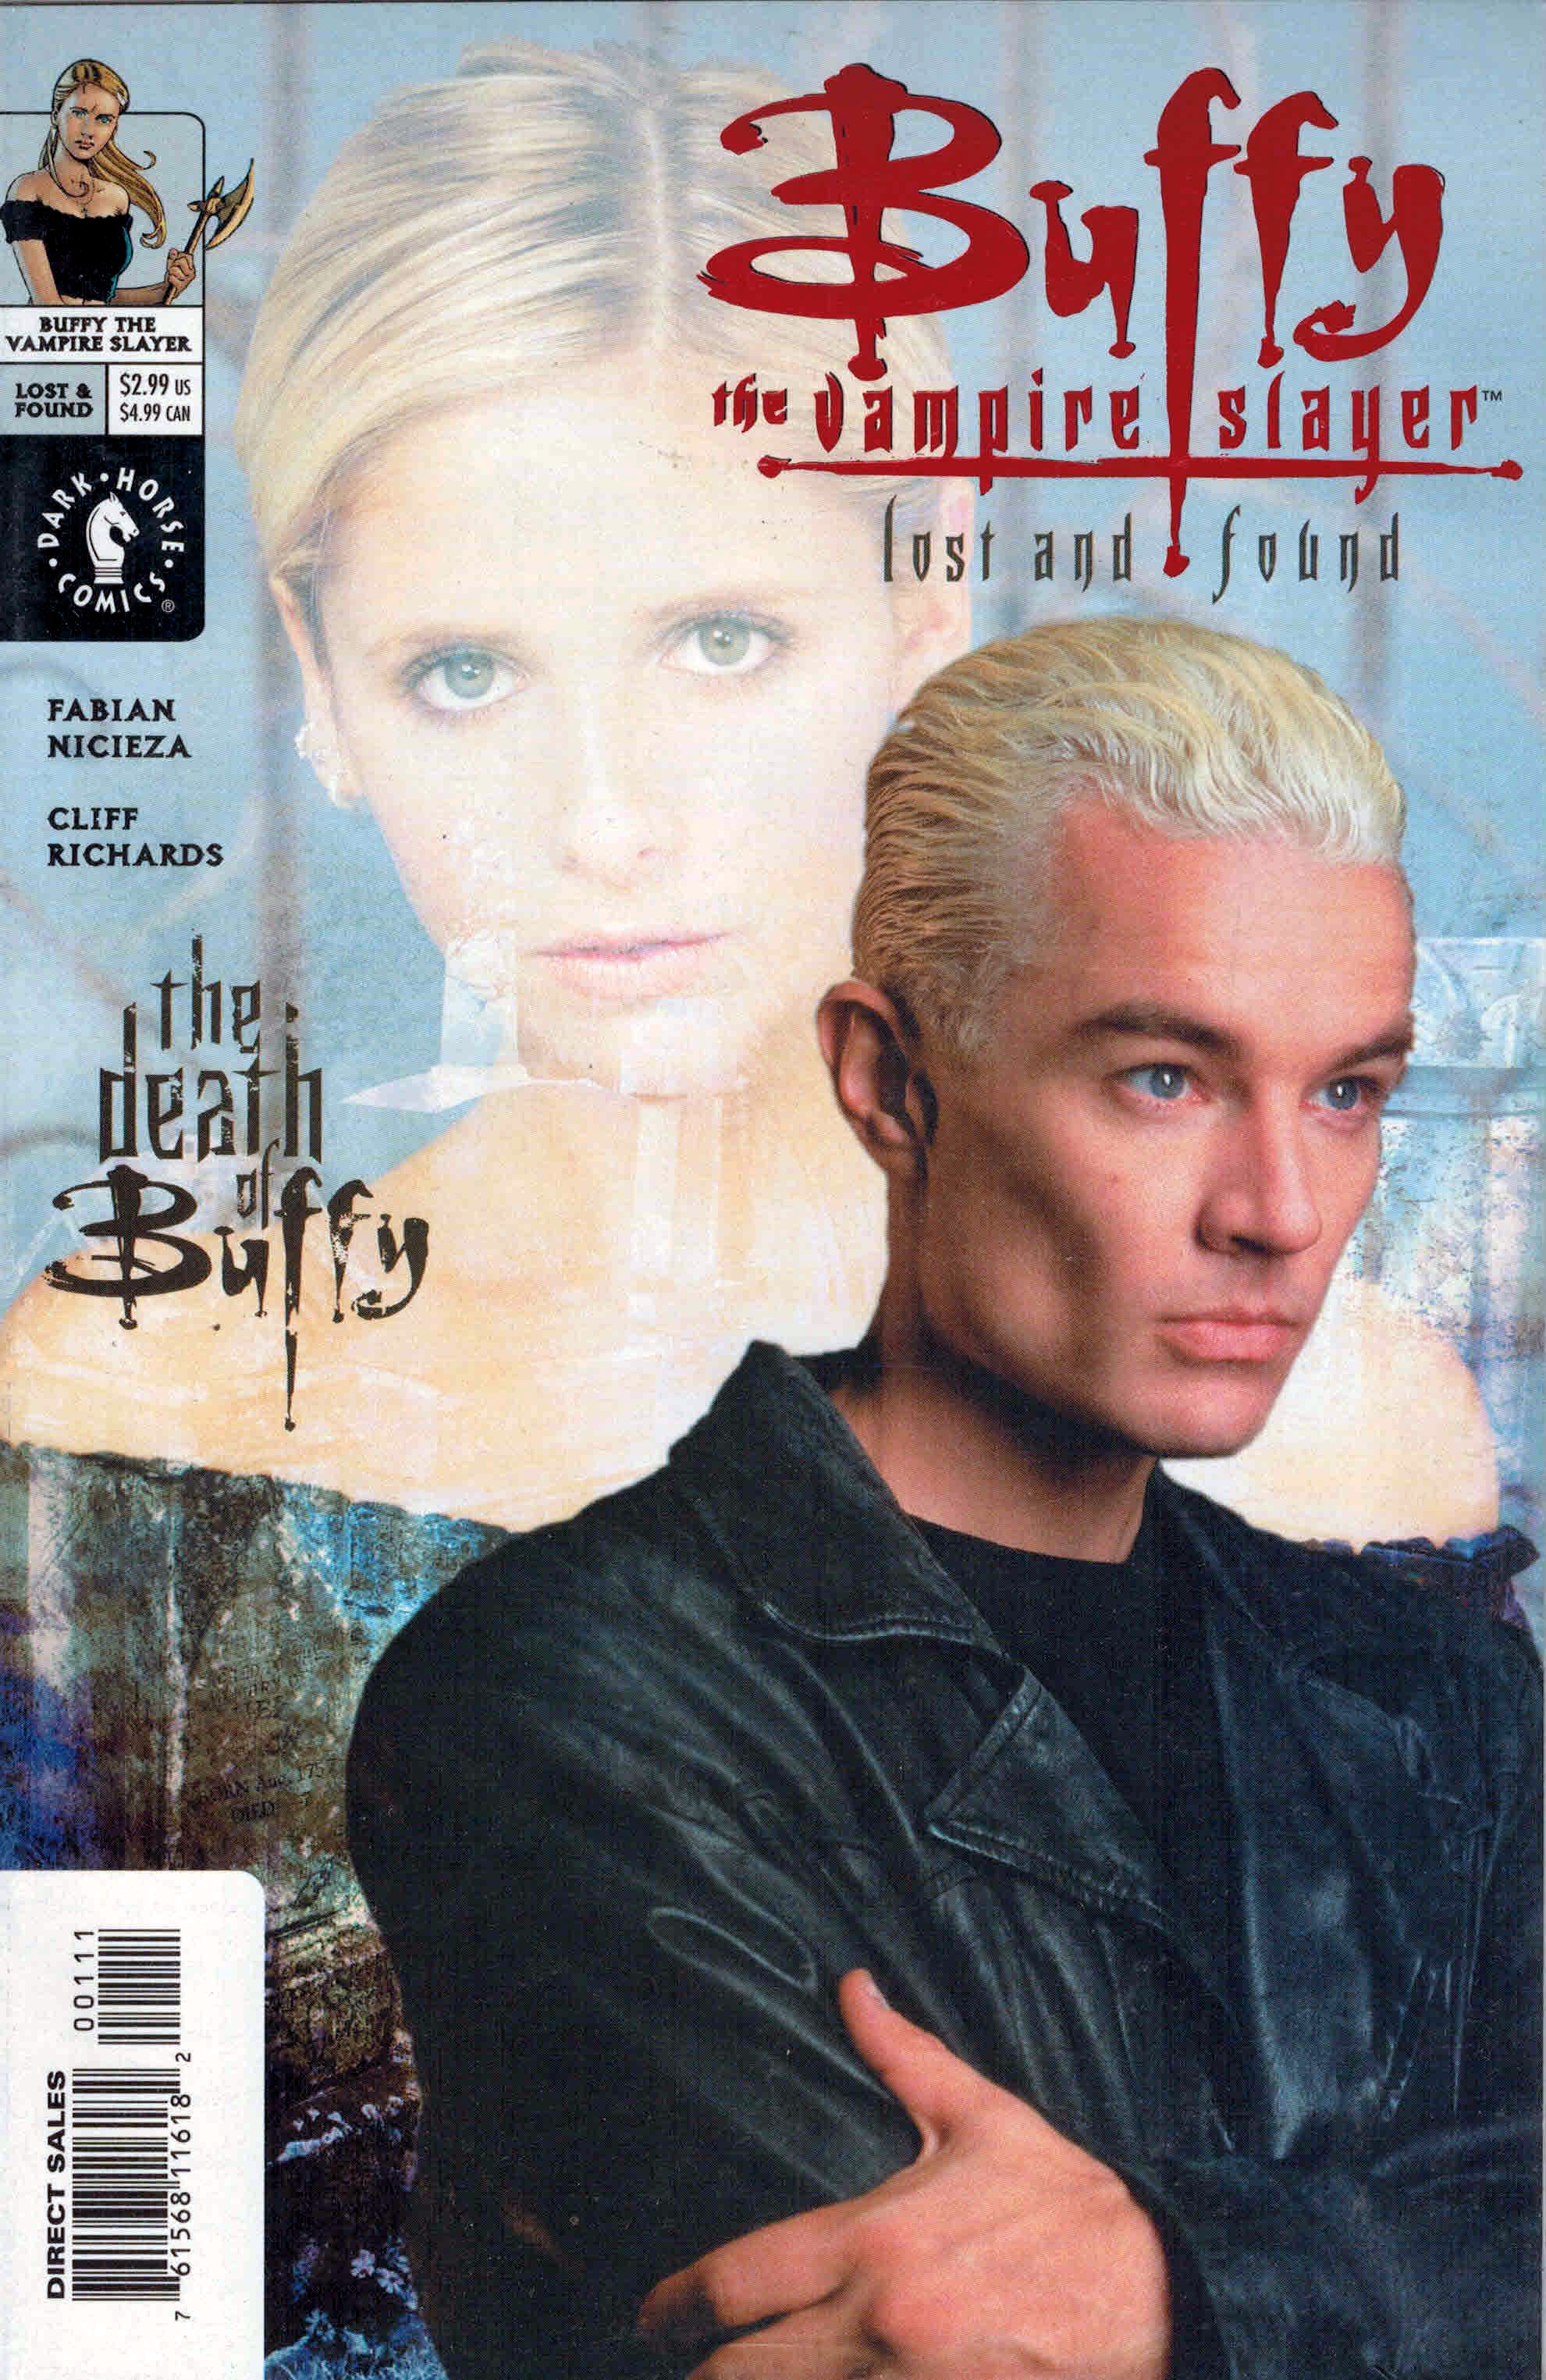 File:Lost and Found (Death of Buffy).jpg